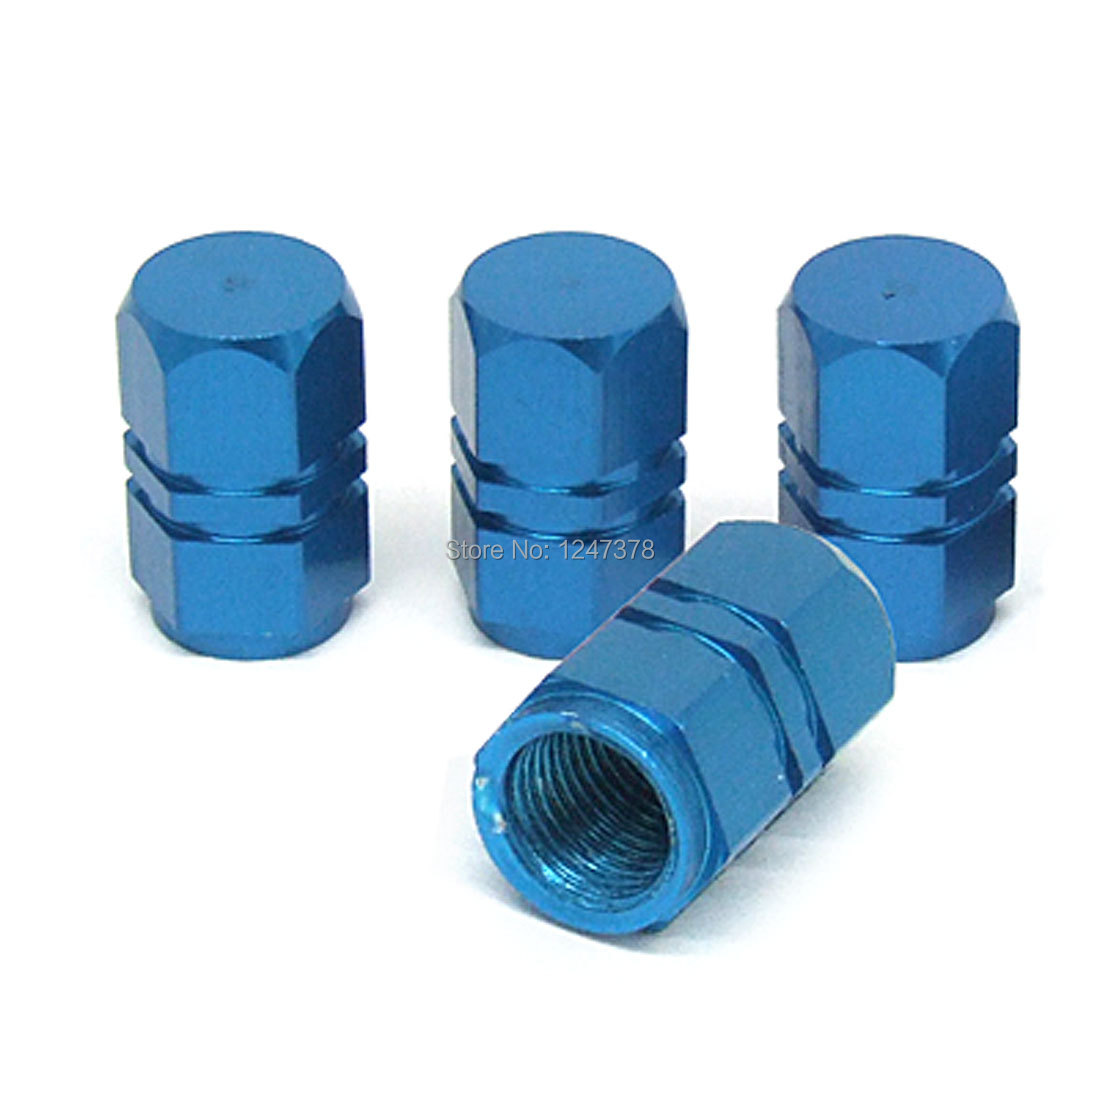 Car Truck Tyre Tire Valve Stem Covers Caps Blue 4 Pcs/lot Discount 50(China (Mainland))